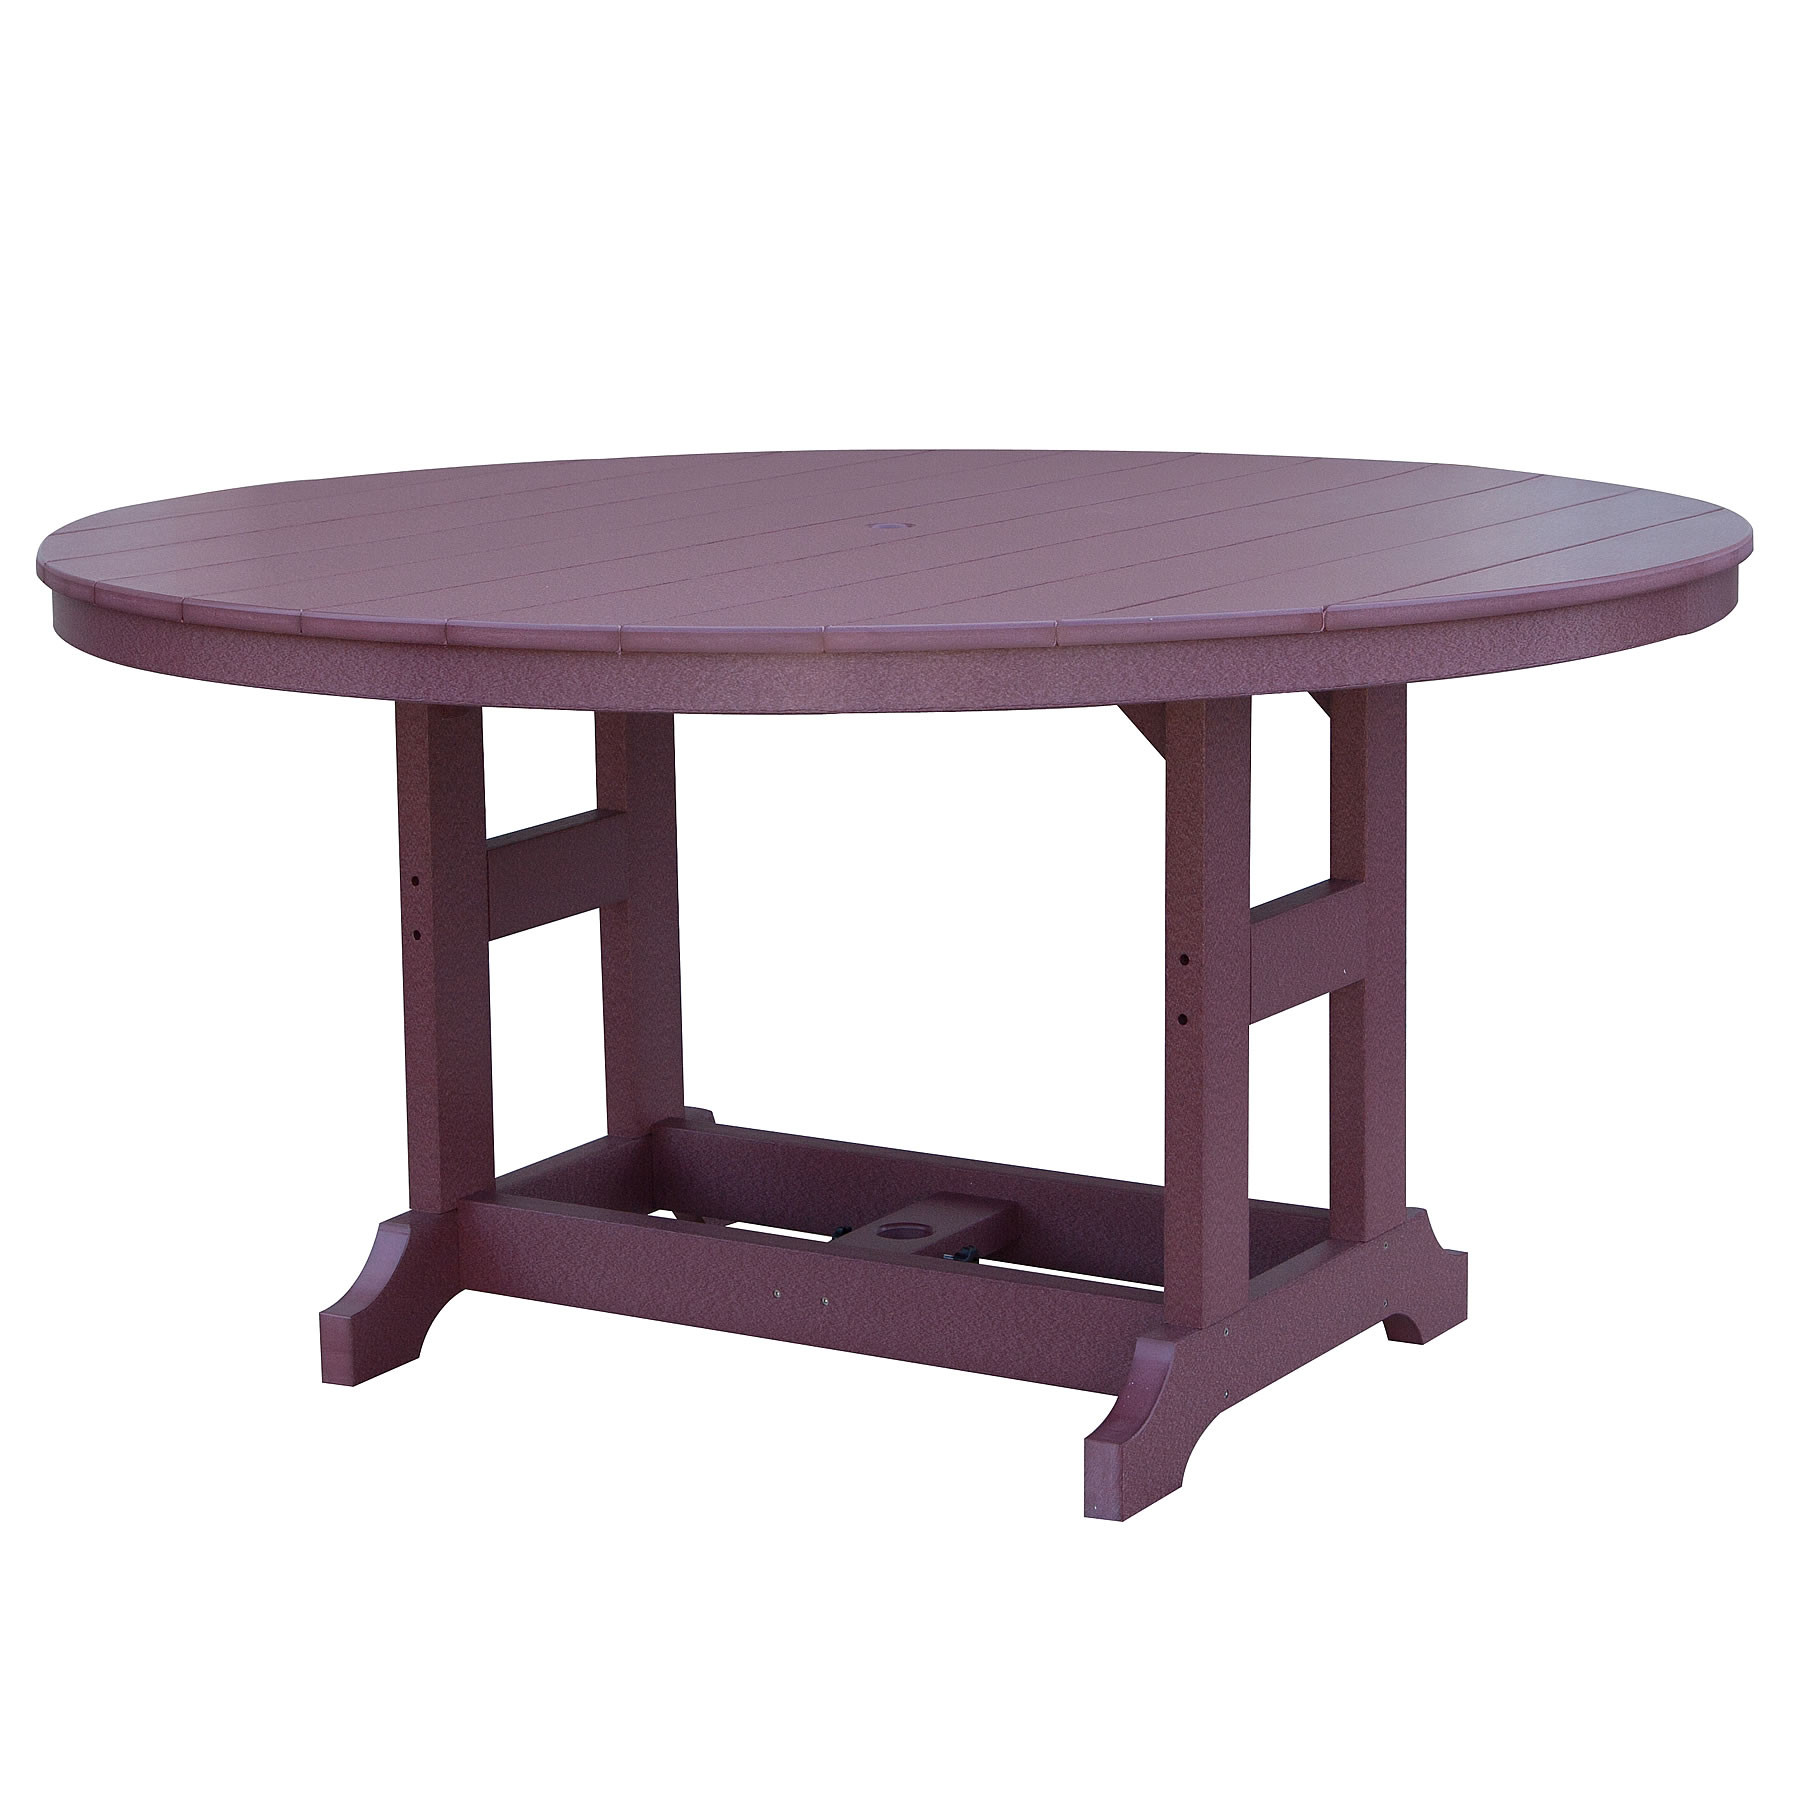 Berlin Gardens Garden Classic 60 in Round Dining Table